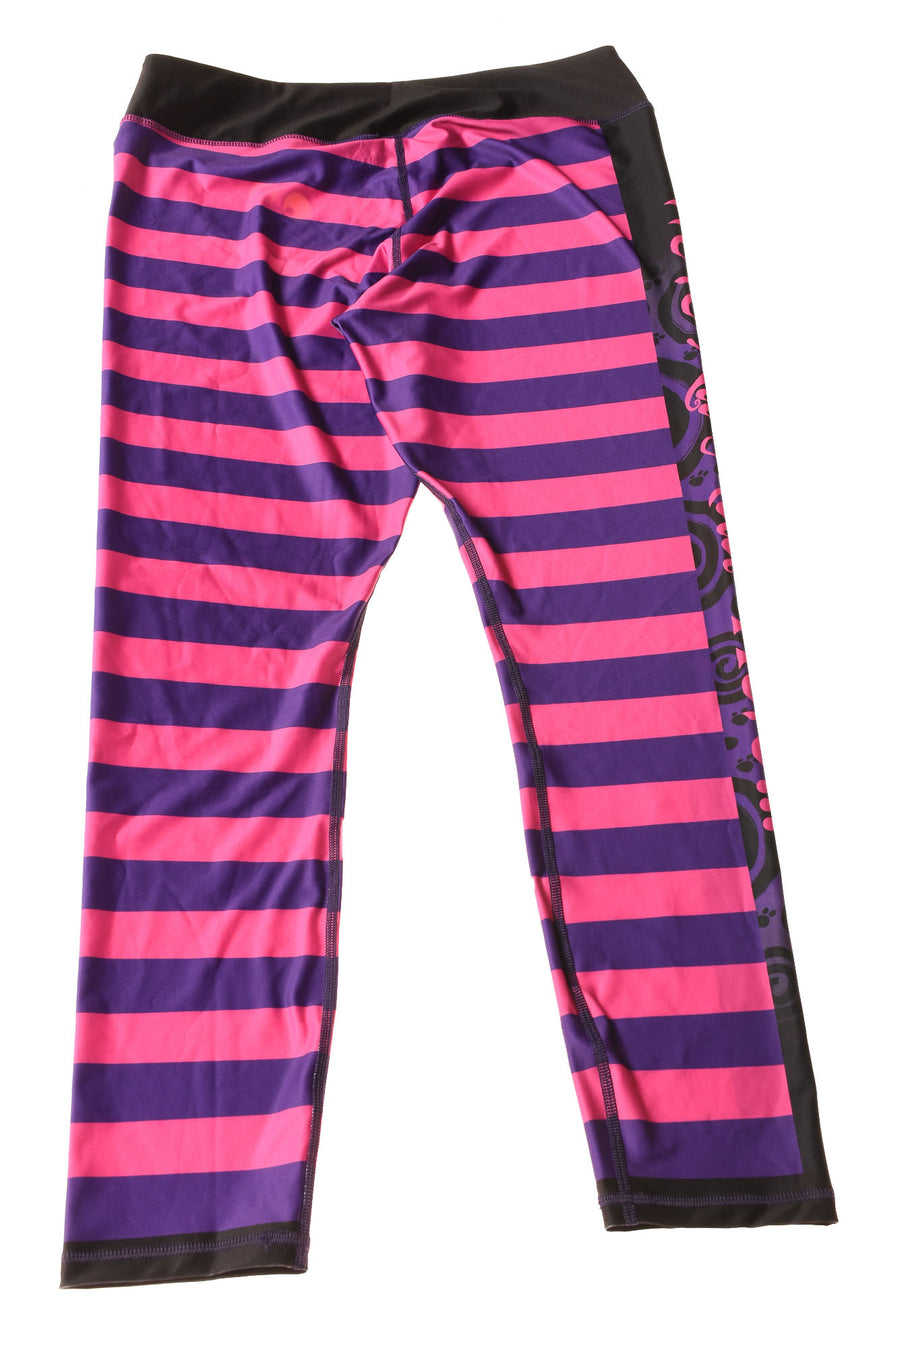 NEW Disney Women's Leggings X-Large Purple & Pink / Striped